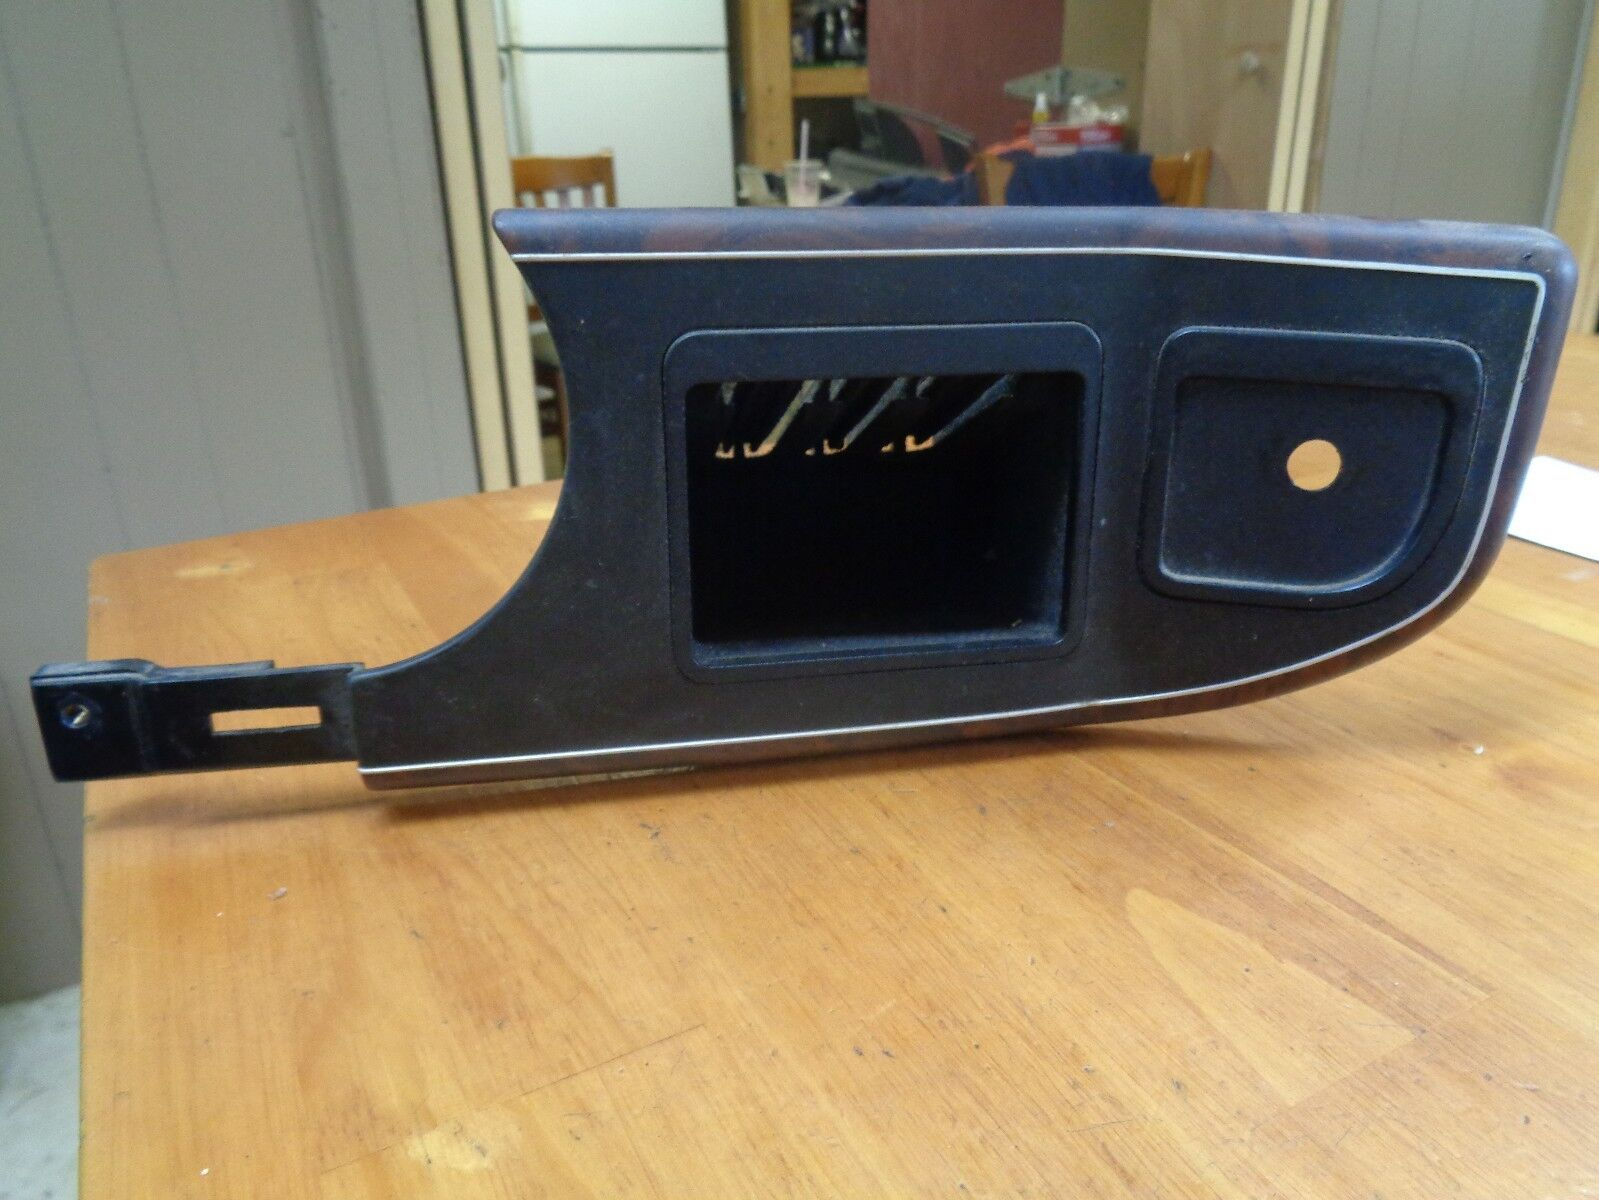 Used 1988 Ford F-350 Dash Parts for Sale - Page 4